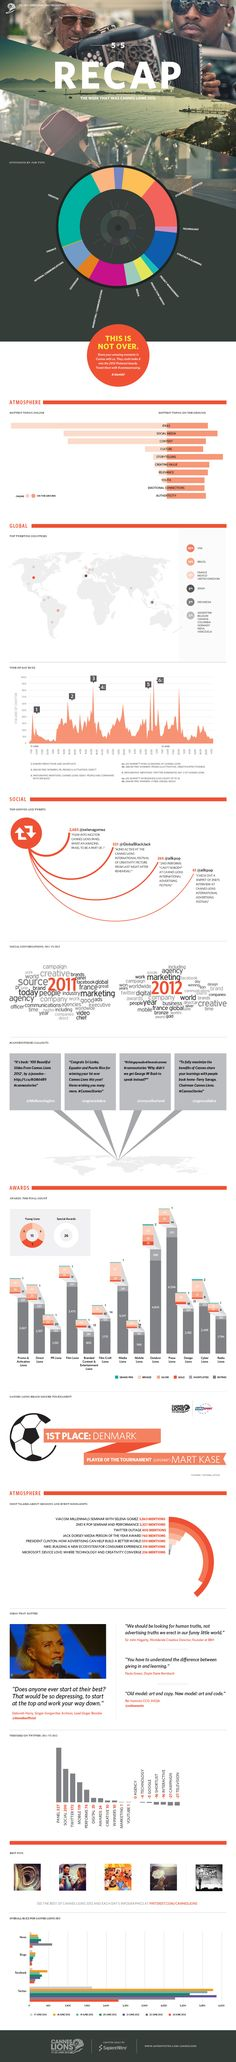 Cannes Lions 2012 Infographic